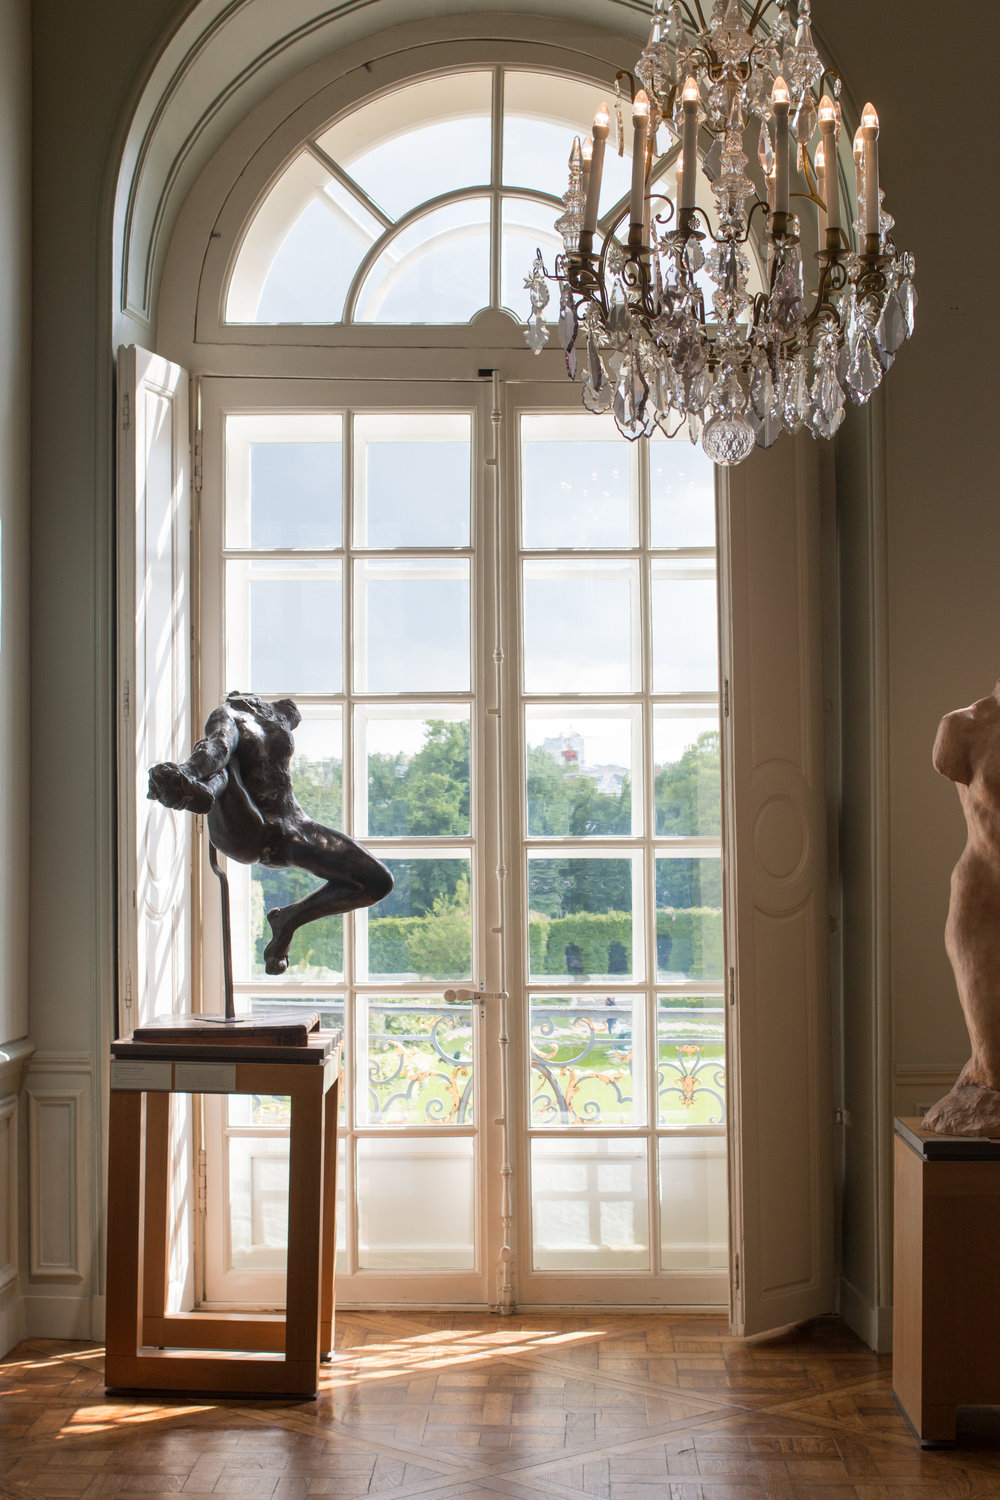 rodin museum via everyday parisian by rebecca plotnick